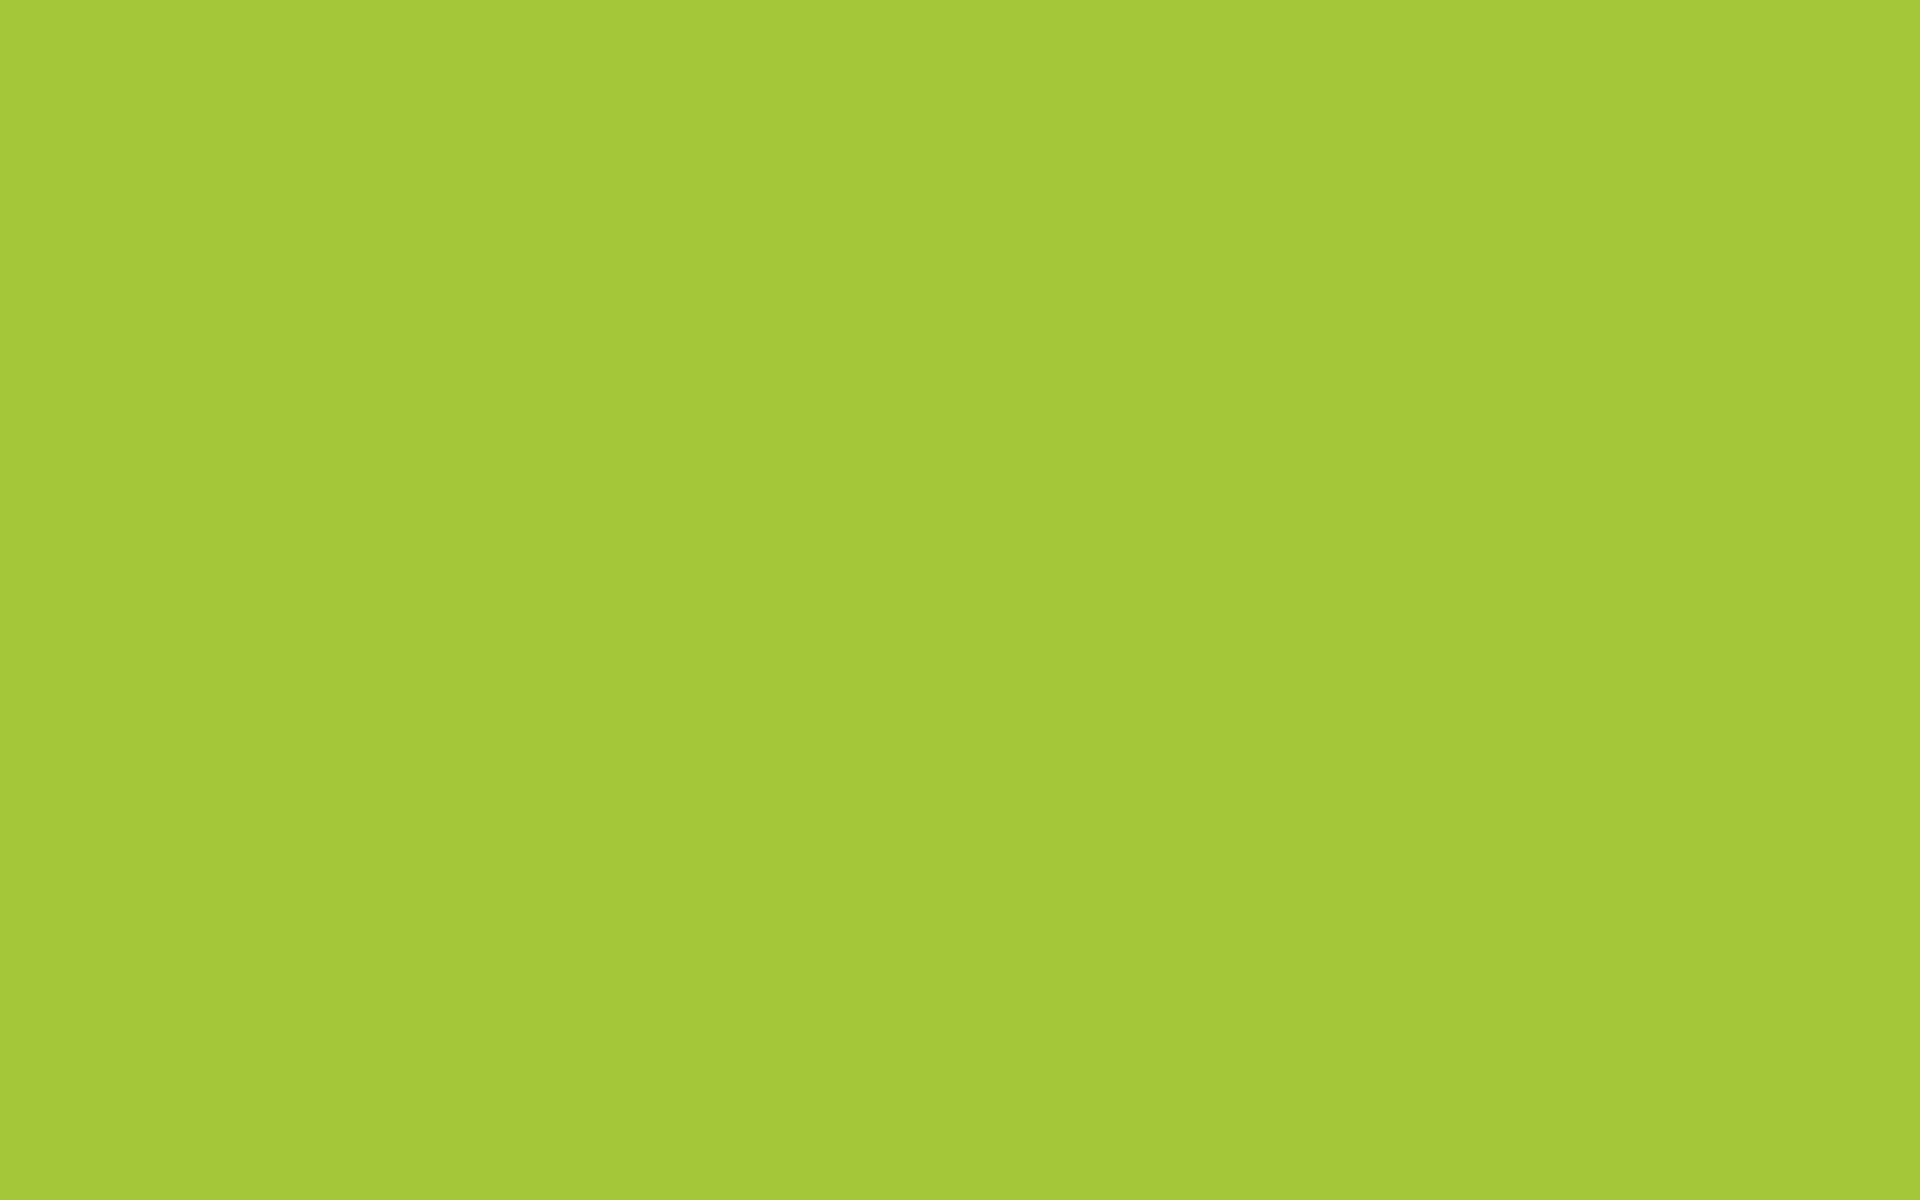 1920x1200 Android Green Solid Color Background